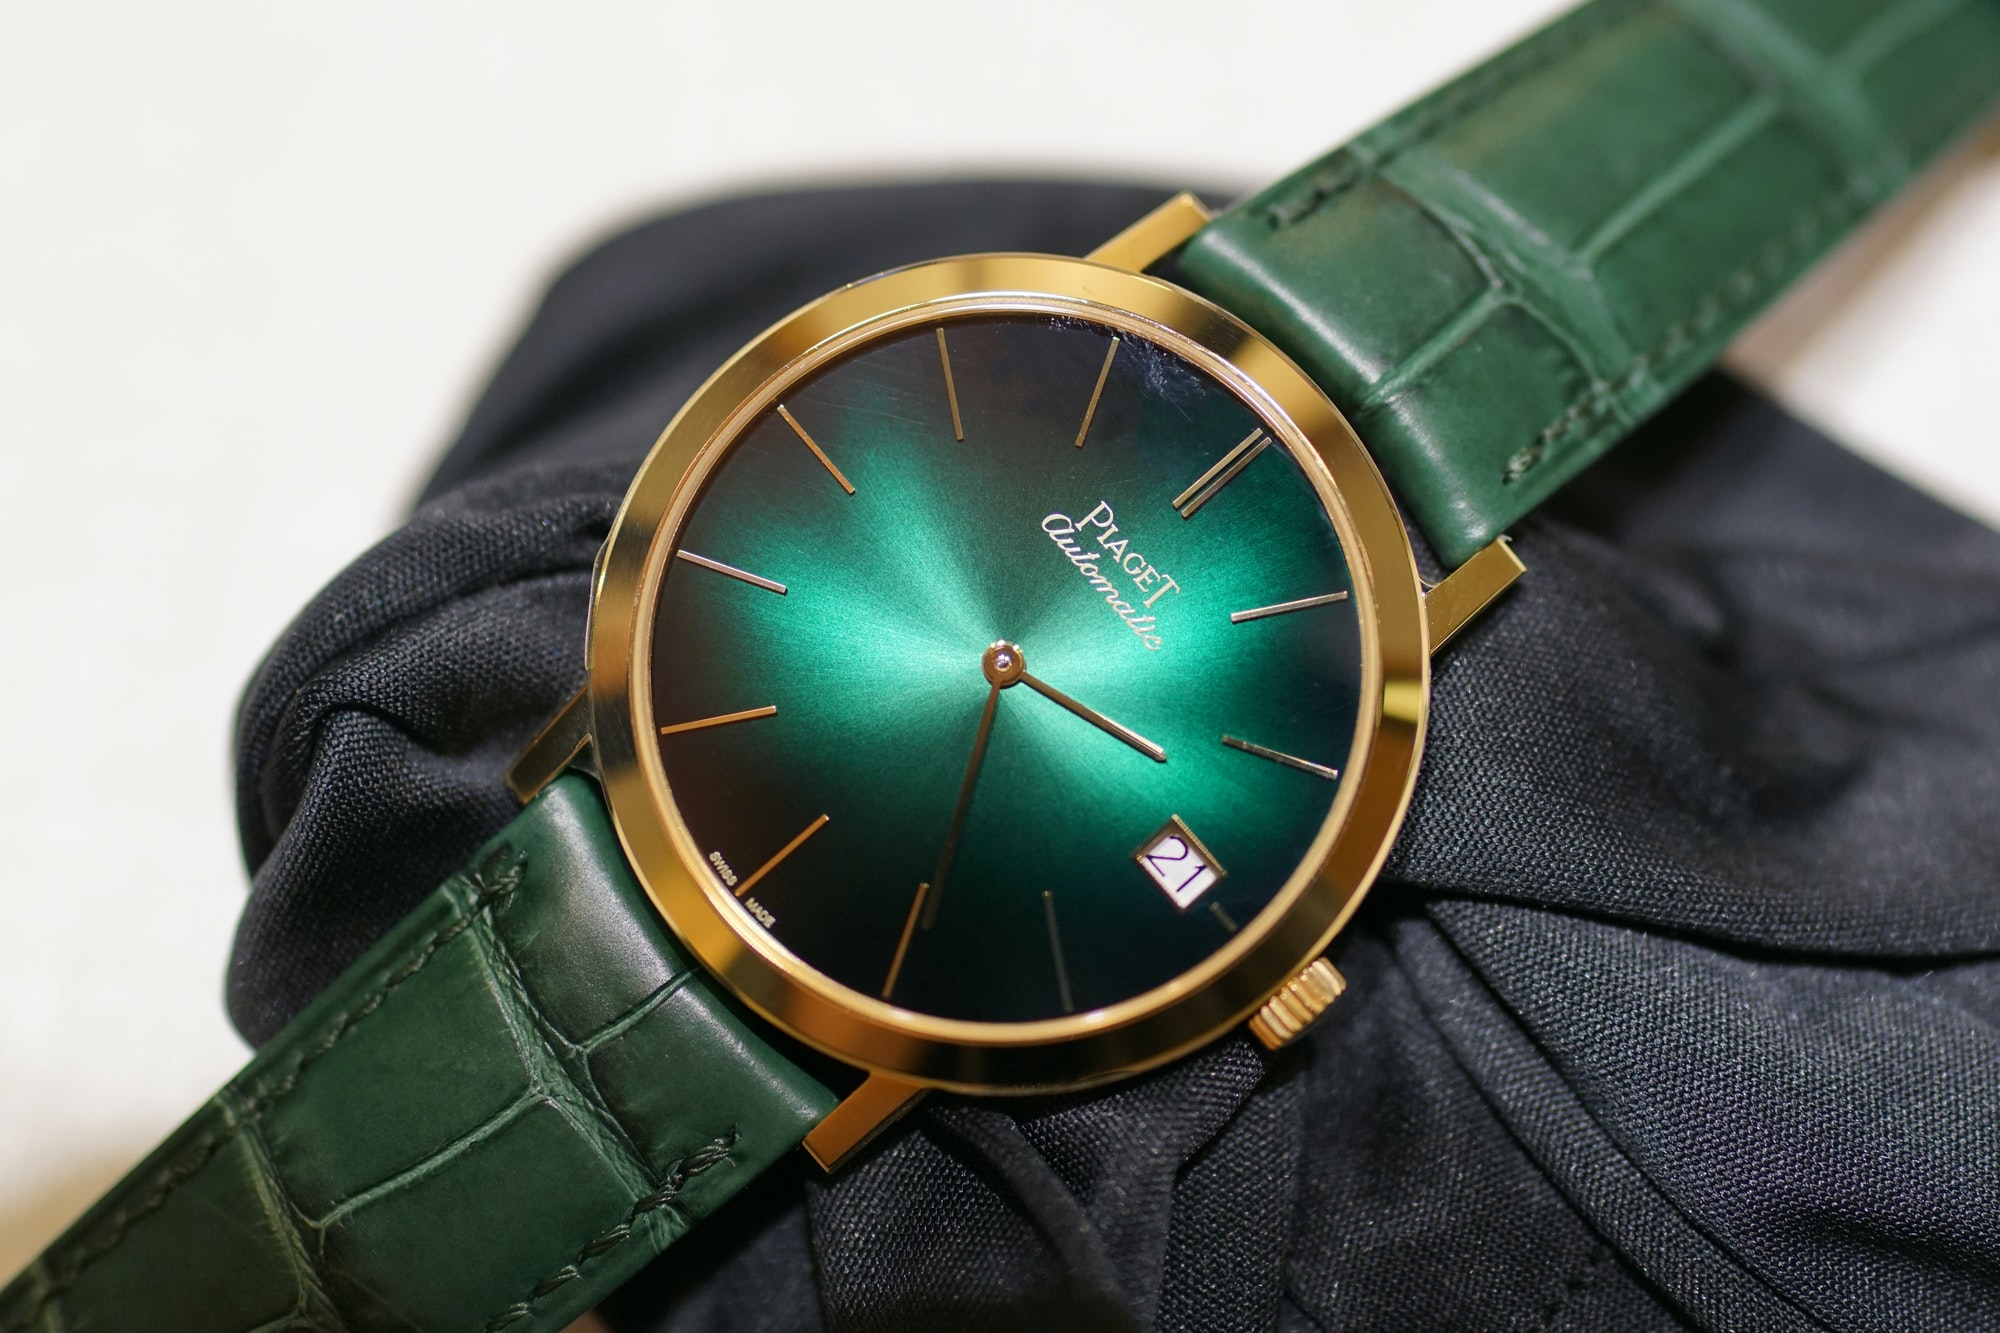 Piaget Altiplano with date G0A42052 Introducing: The Piaget Altiplano Automatic With Date, Going Back To The Roots Of Piaget (Live Pics + Pricing) Introducing: The Piaget Altiplano Automatic With Date, Going Back To The Roots Of Piaget (Live Pics + Pricing) piaget